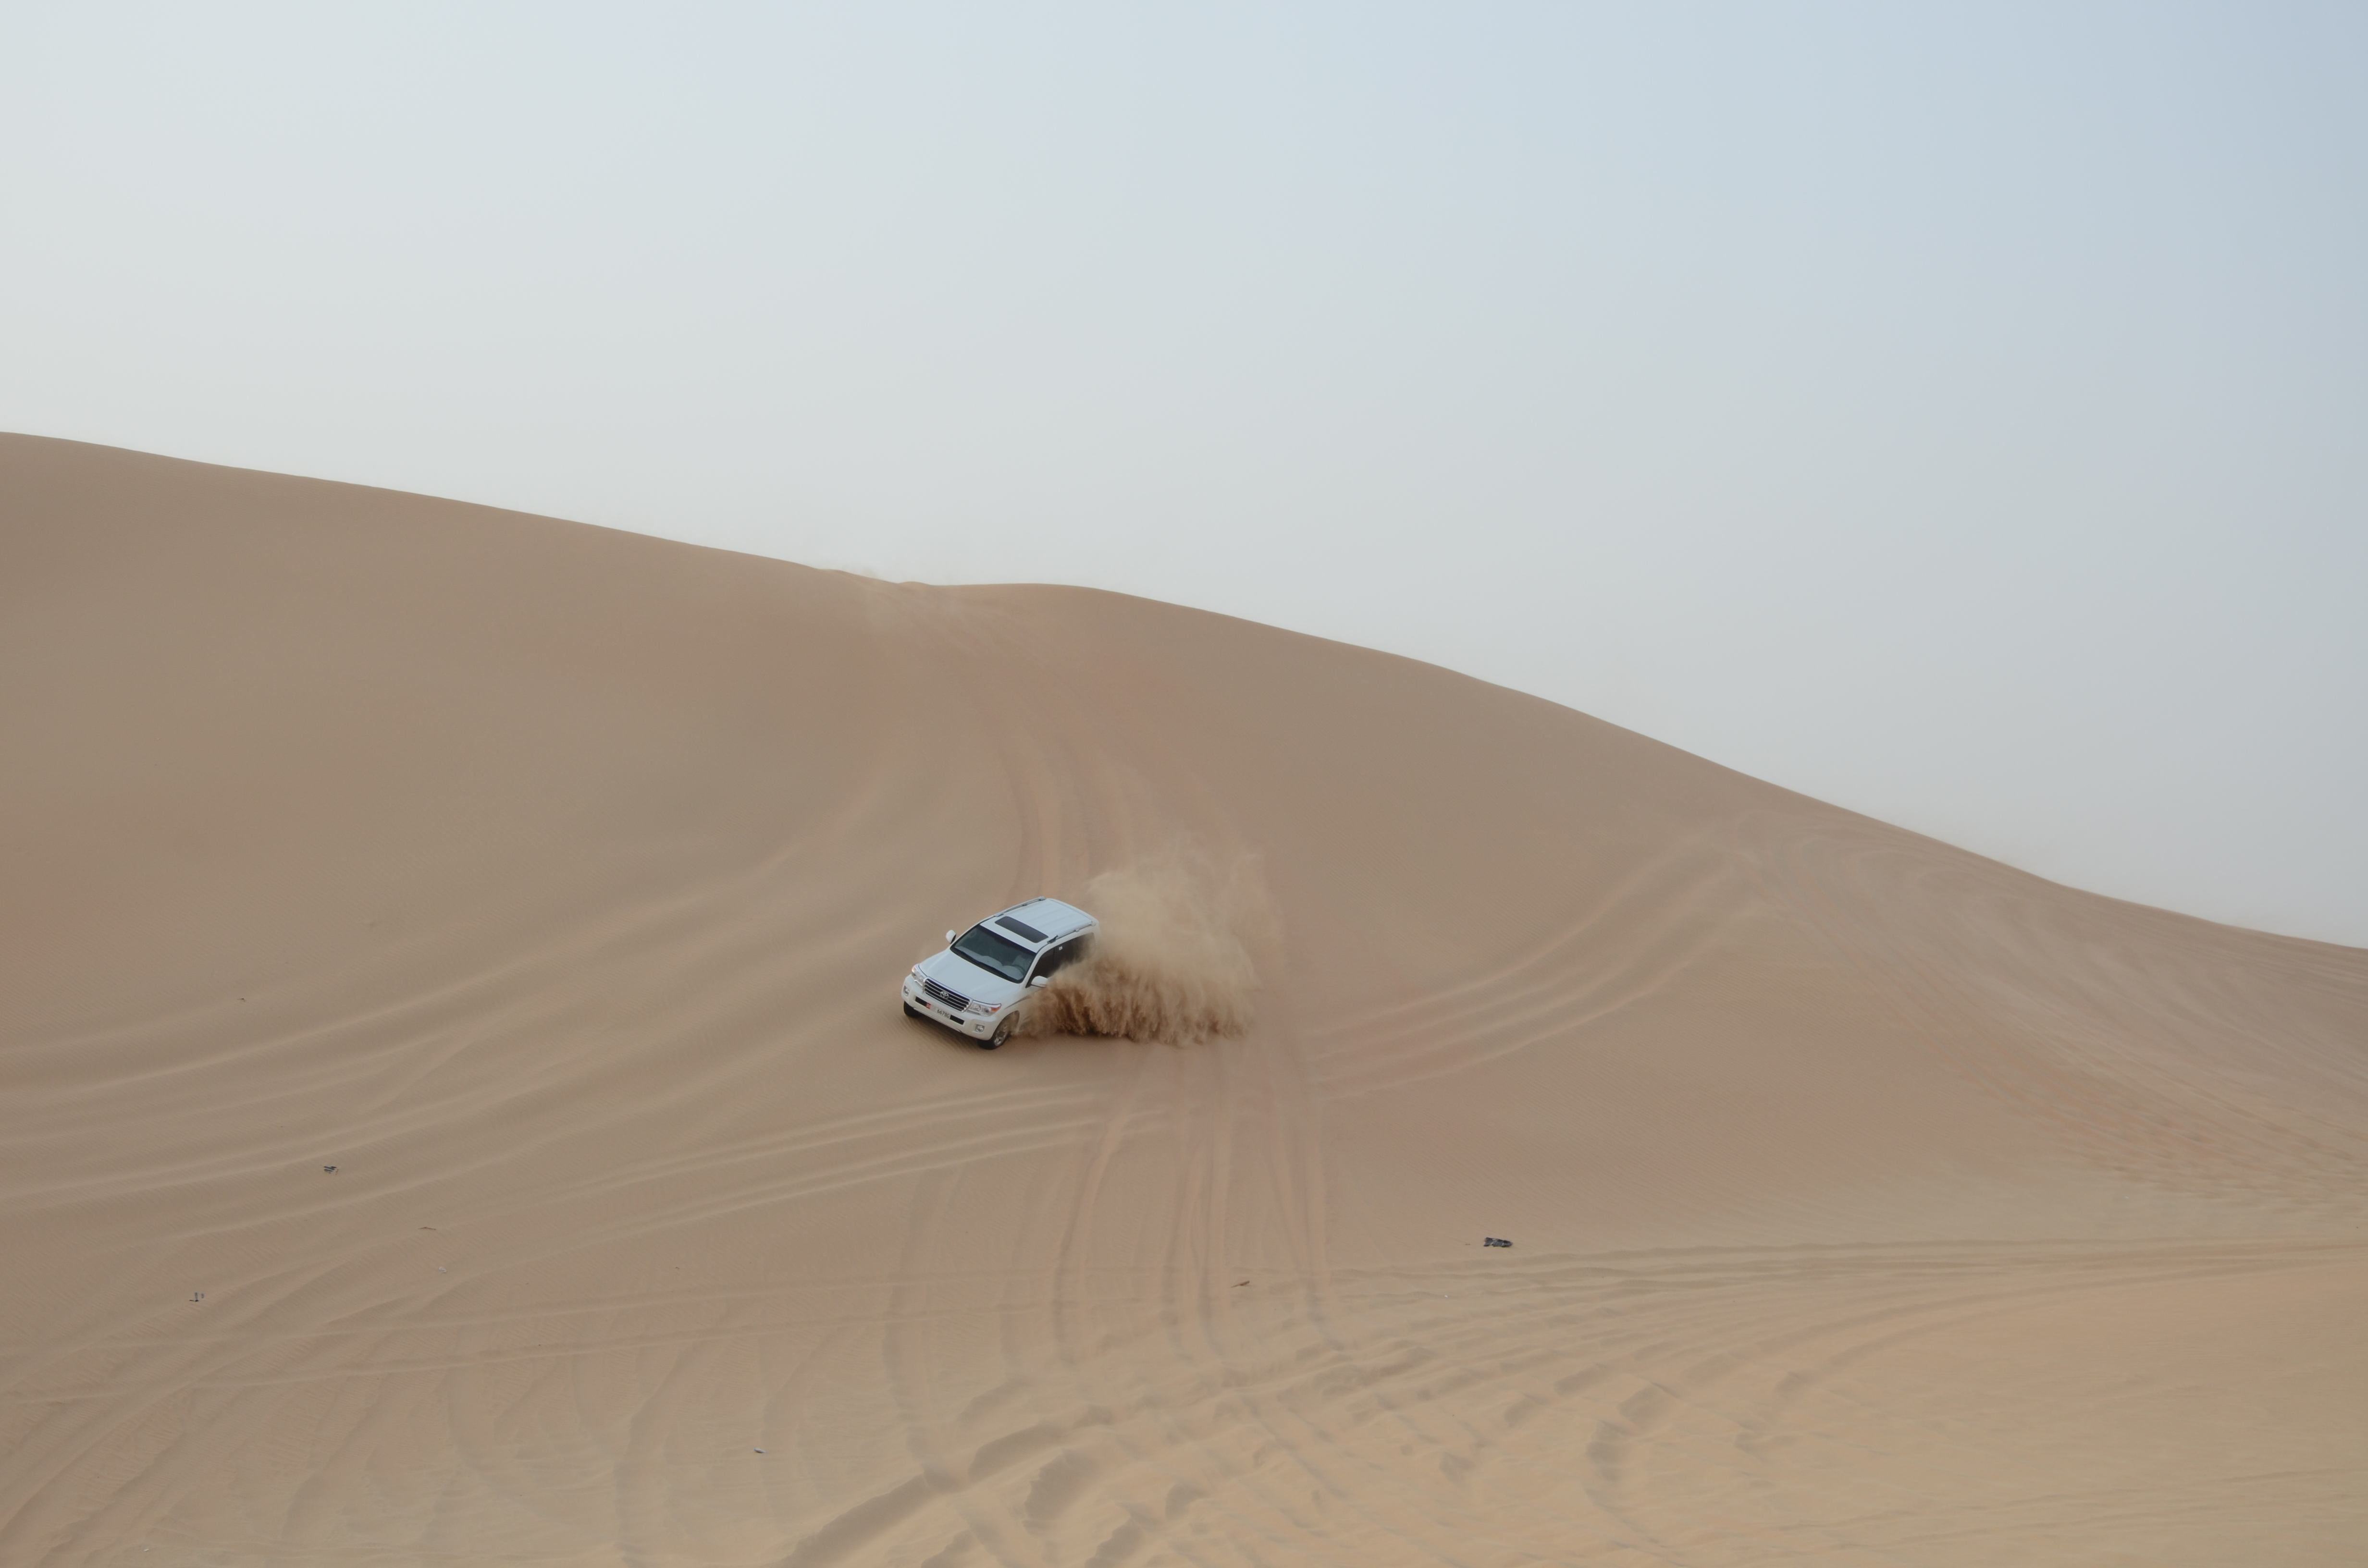 Morning Desert Dune Bashing